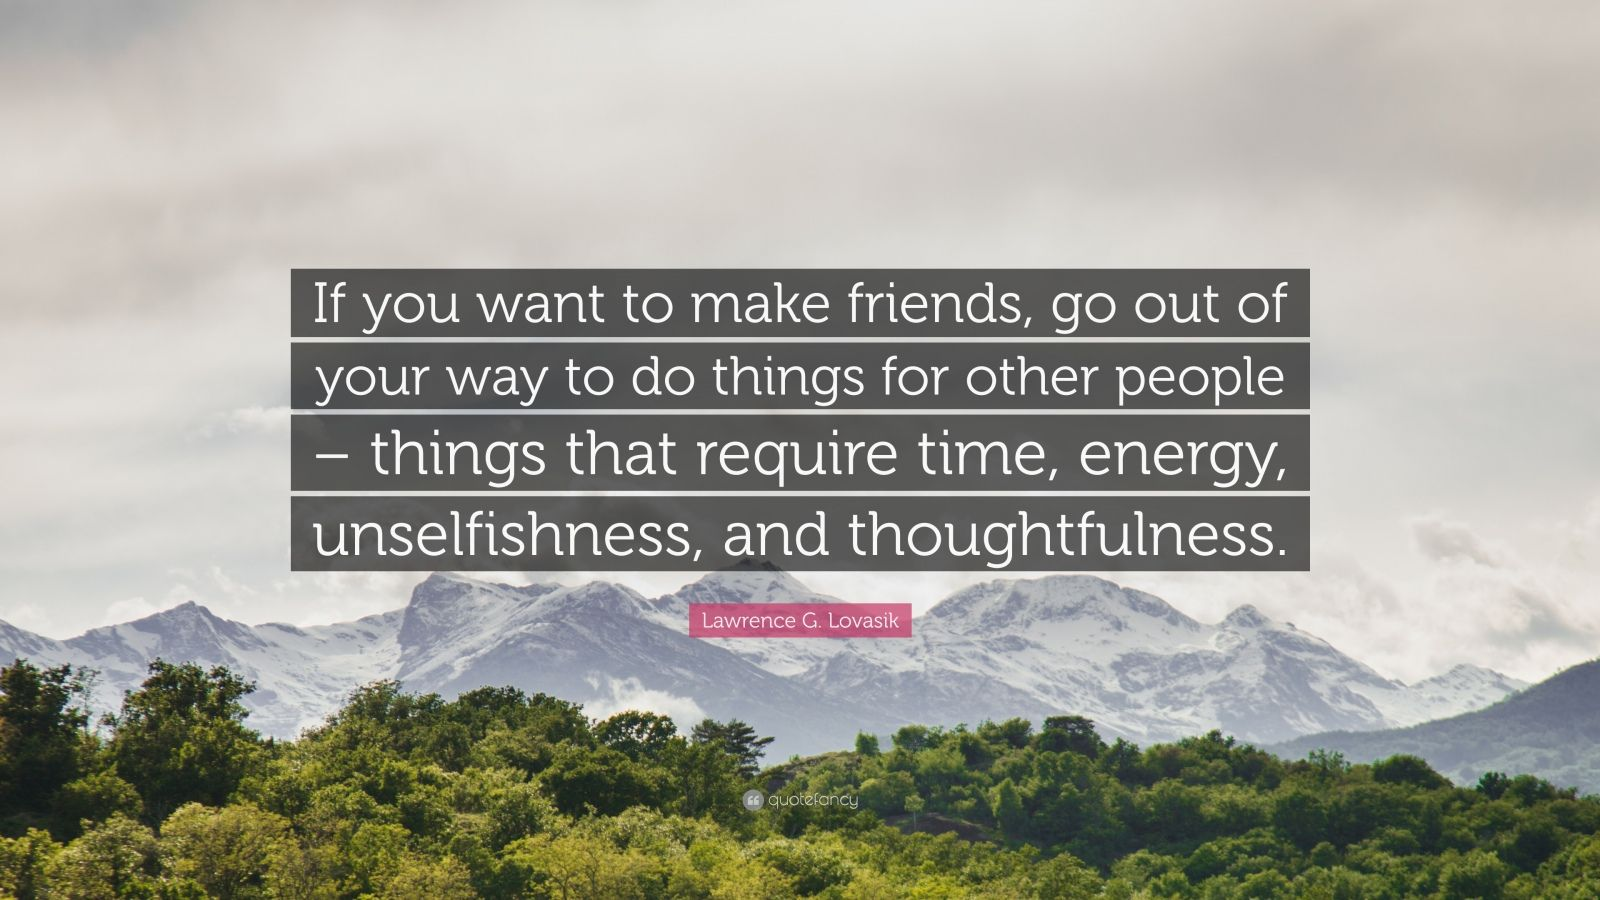 """Lawrence G. Lovasik Quote: """"If you want to make friends, go out of your way to do things for other people – things that require time, energy, unselfishness, and thoughtfulness."""""""